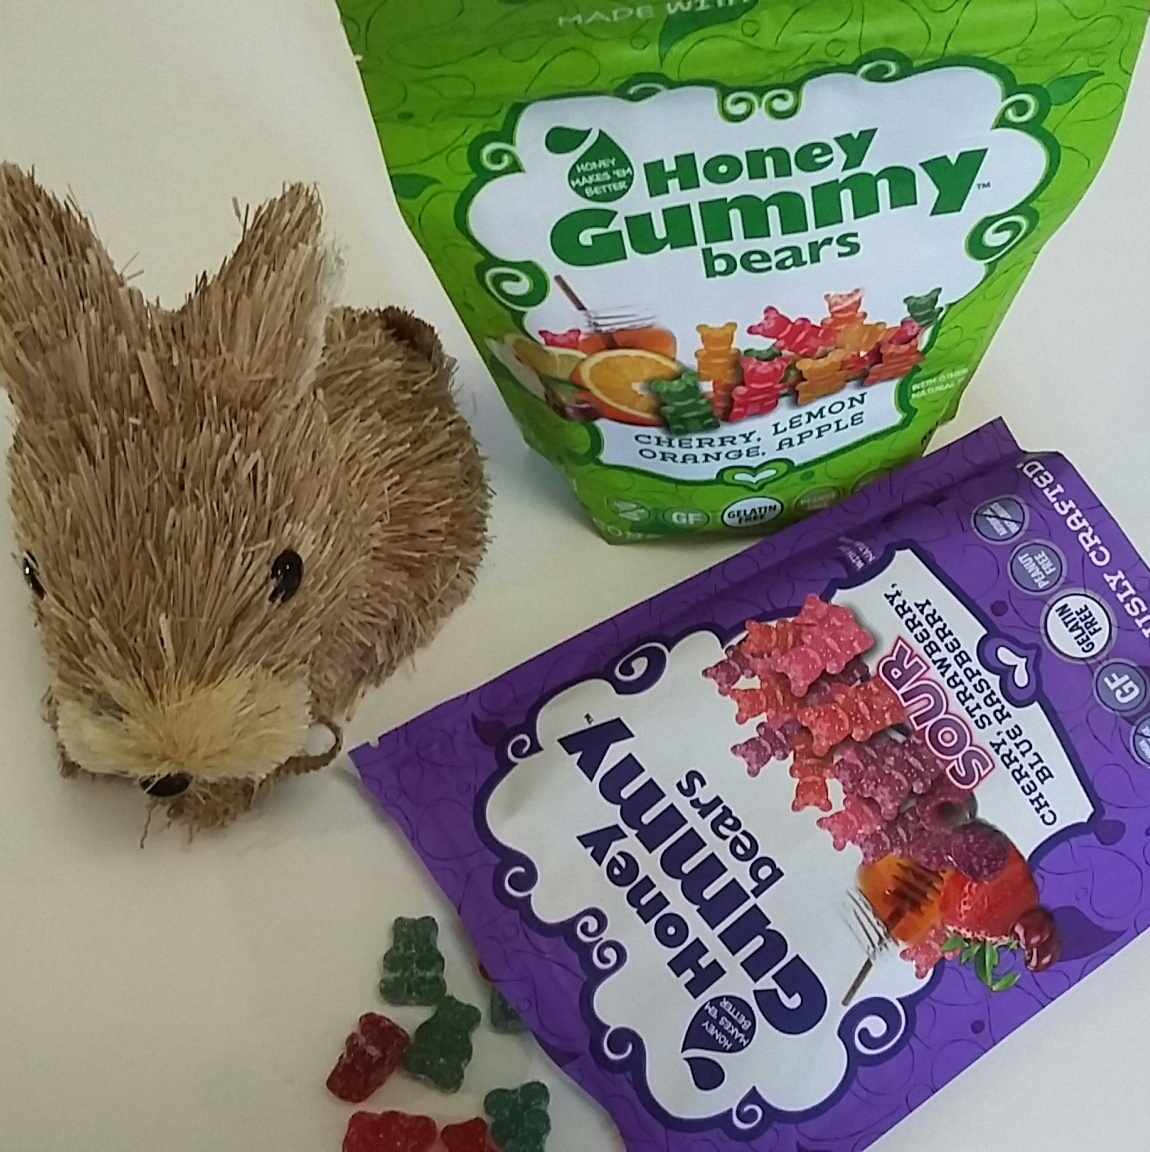 Gluten Free Candy for Easter that Taste GREAT